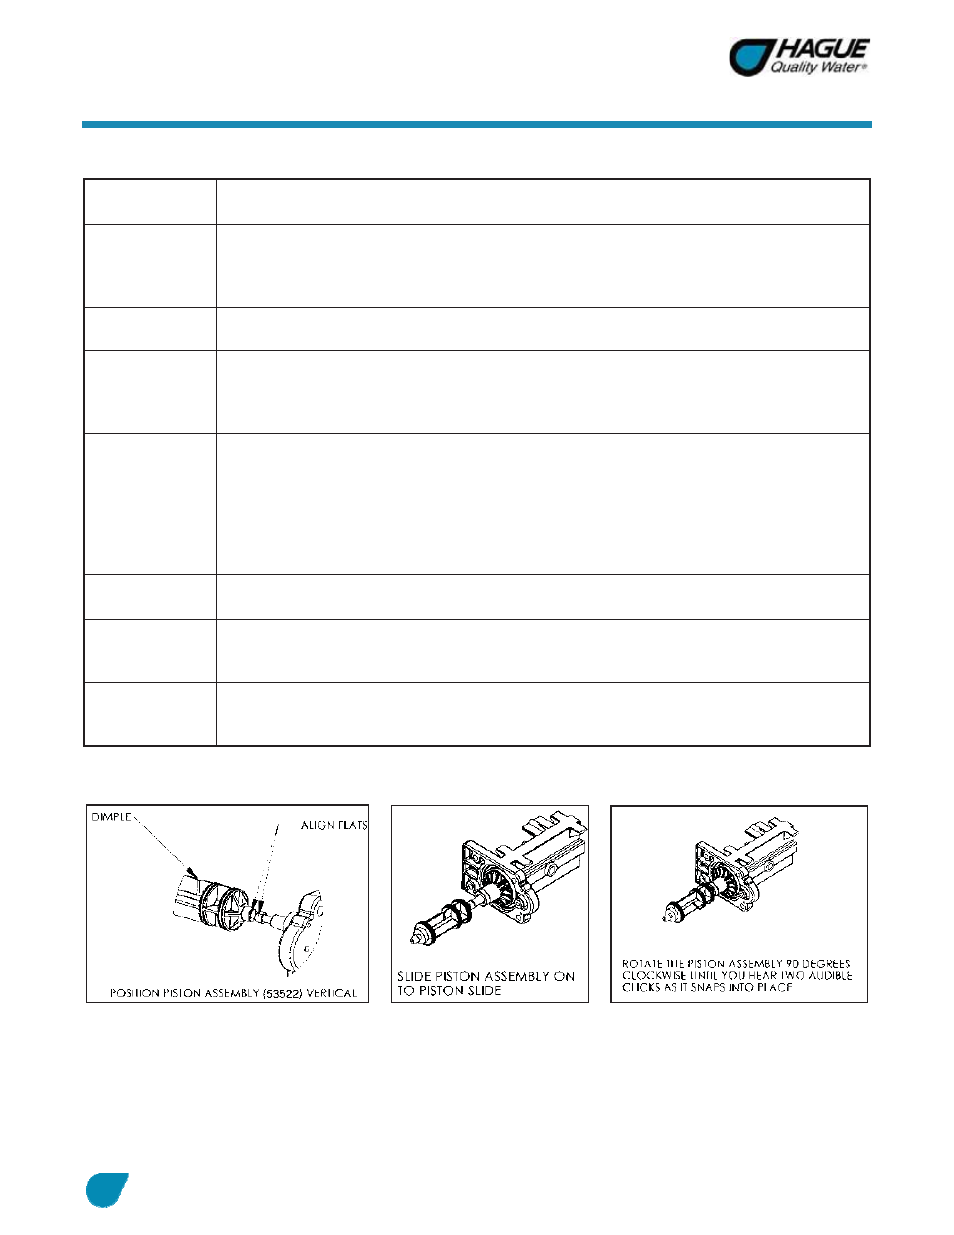 Assembly And Parts Cont Drive End Cap Assembly Cont Manual Guide